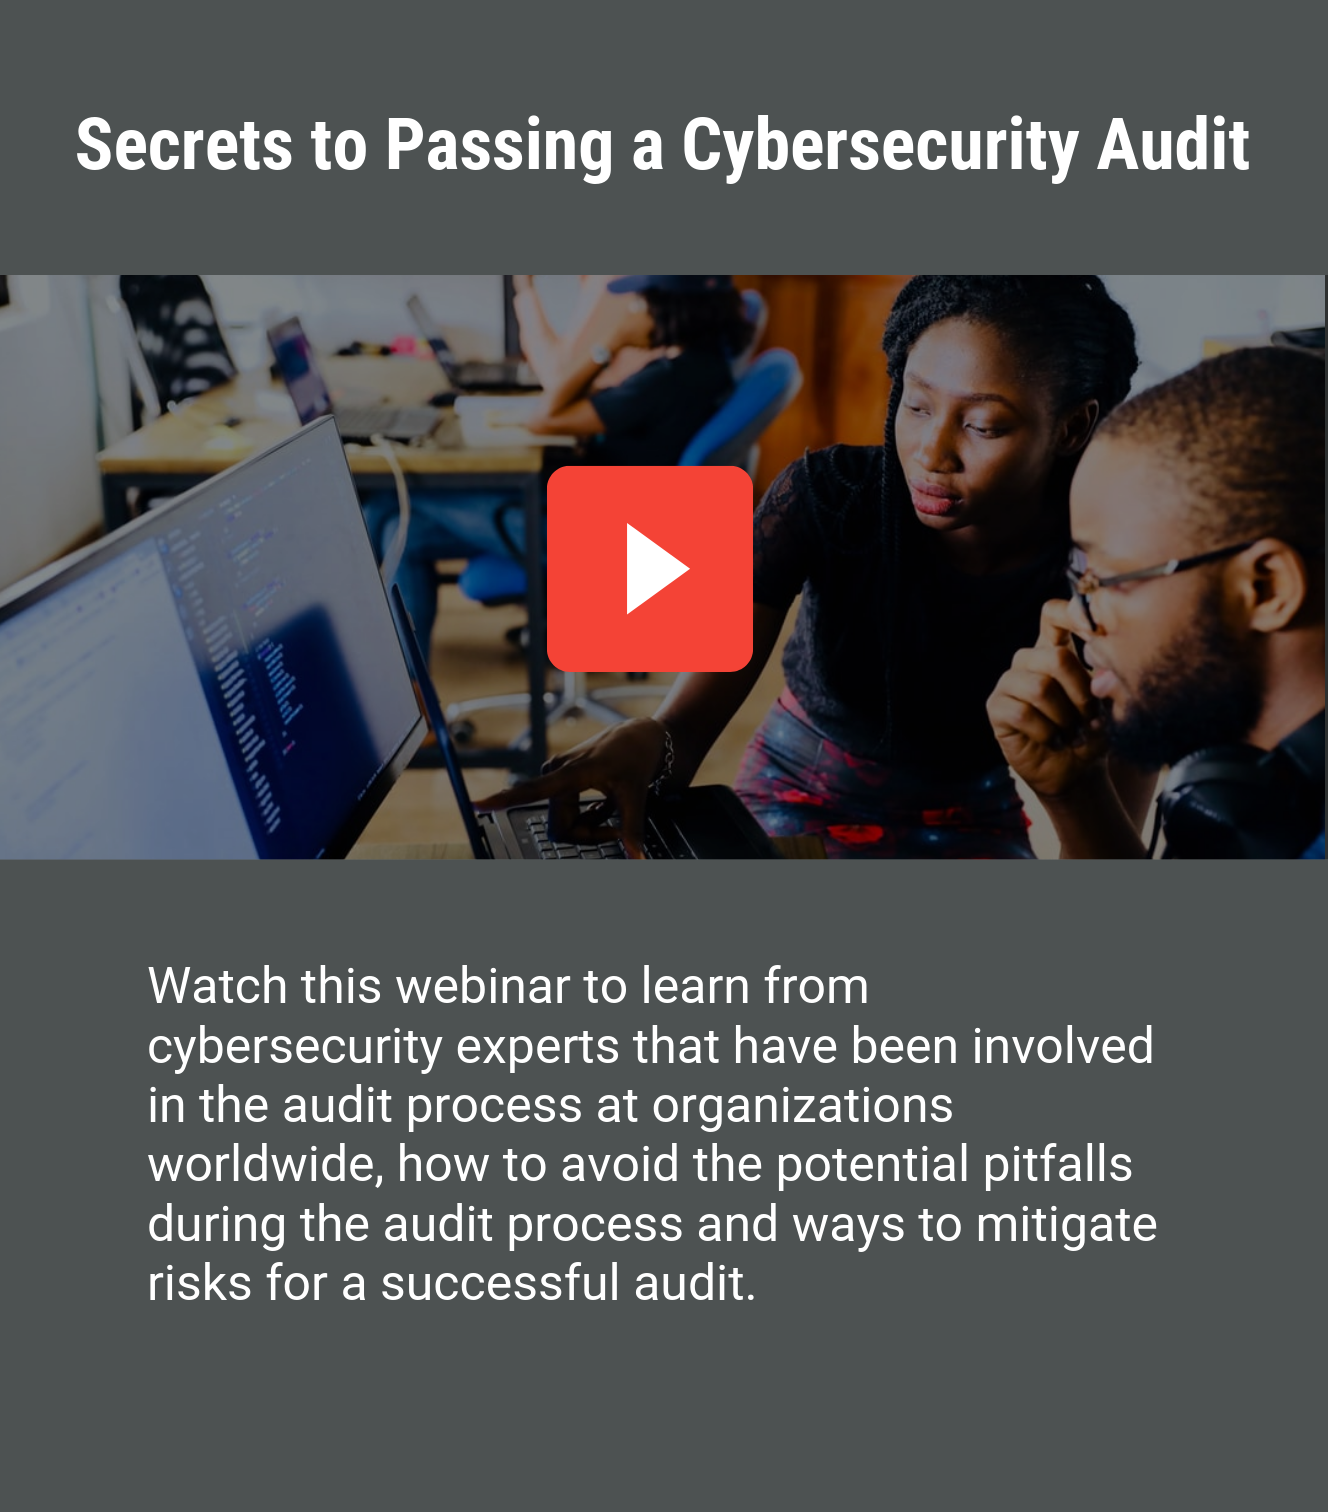 Secrets to passing a cybersecurity audit